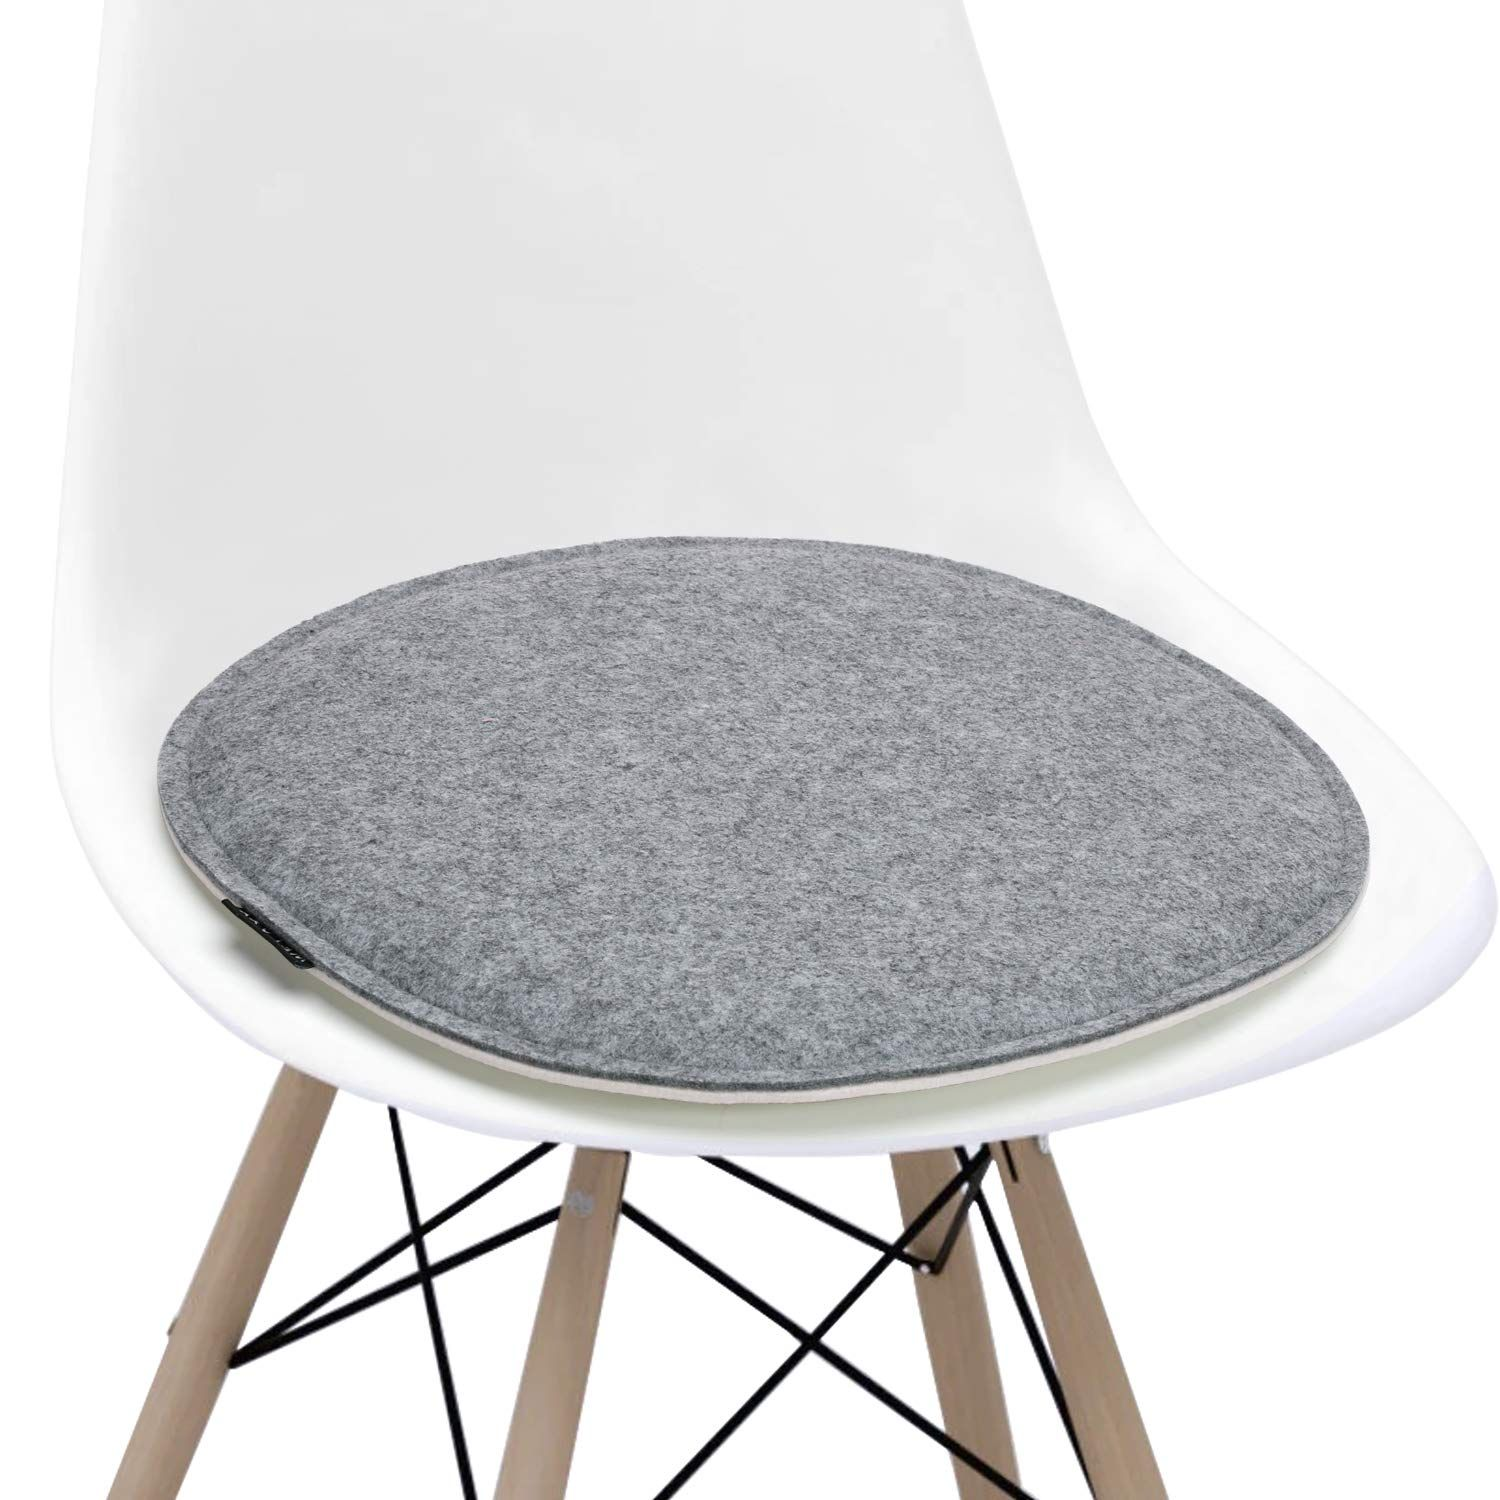 Welaxy Felt Chair Pads Seat Cushion For Eames Chair Dsw Plastic Chairs Pads For Office I Upholstered Rocking Chairs Modern Dining Side Chairs Dining Chair Pads